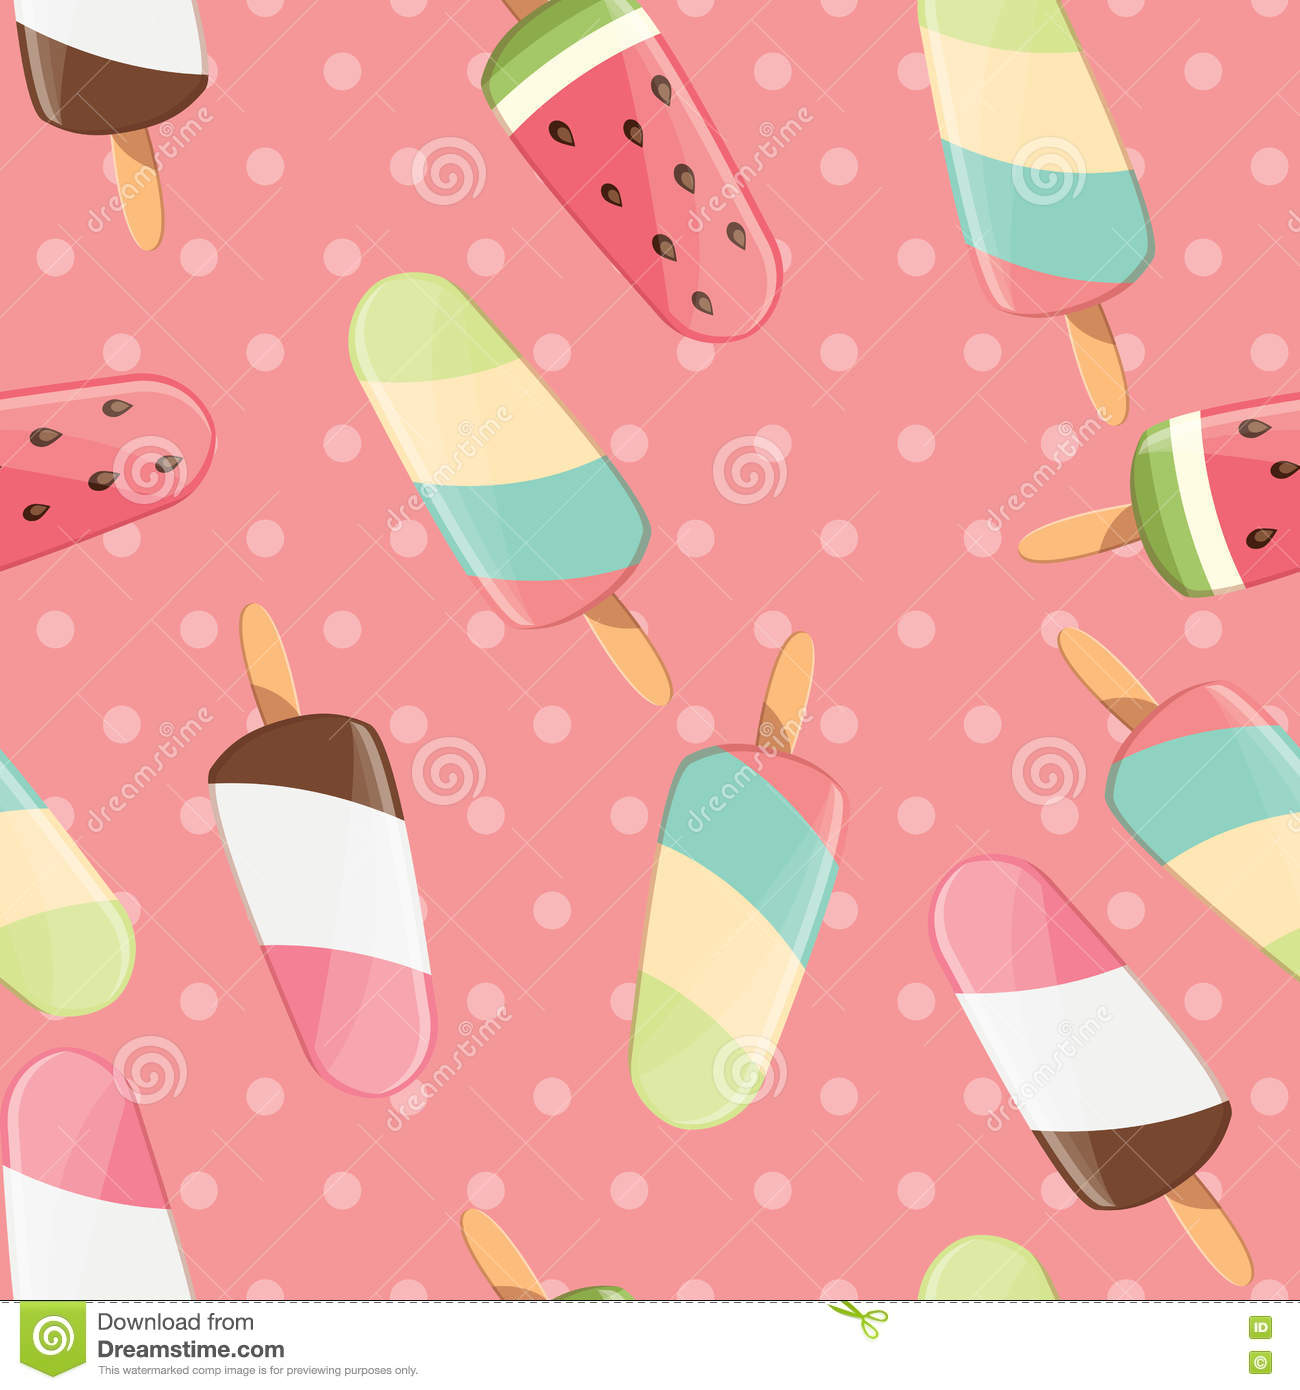 Sweet Ice Cream Flat Colorful Seamless Pattern Vector: Ice Cream Seamless Pattern, Colorful Summer Background